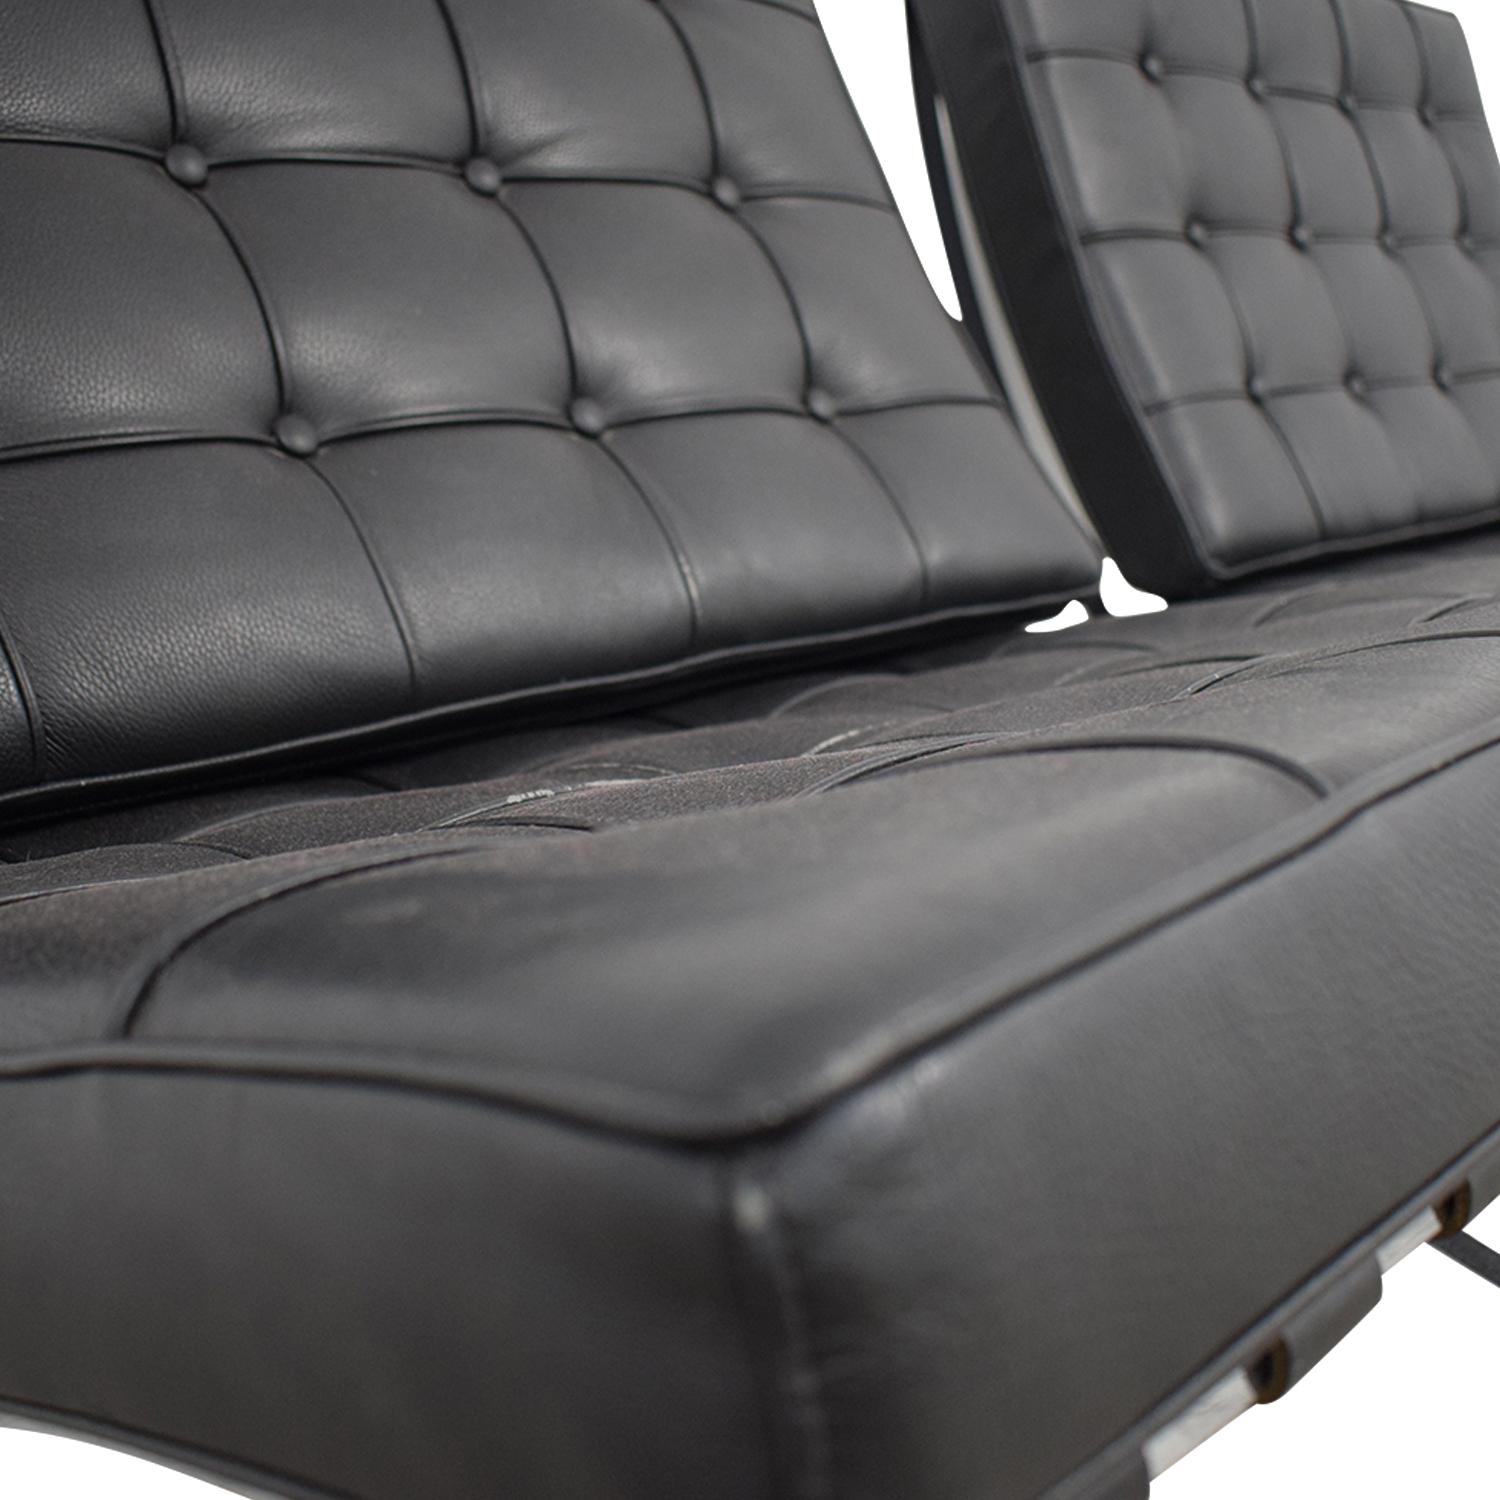 Black and Chrome Tufted Barcelona Style Accent Chairs for sale